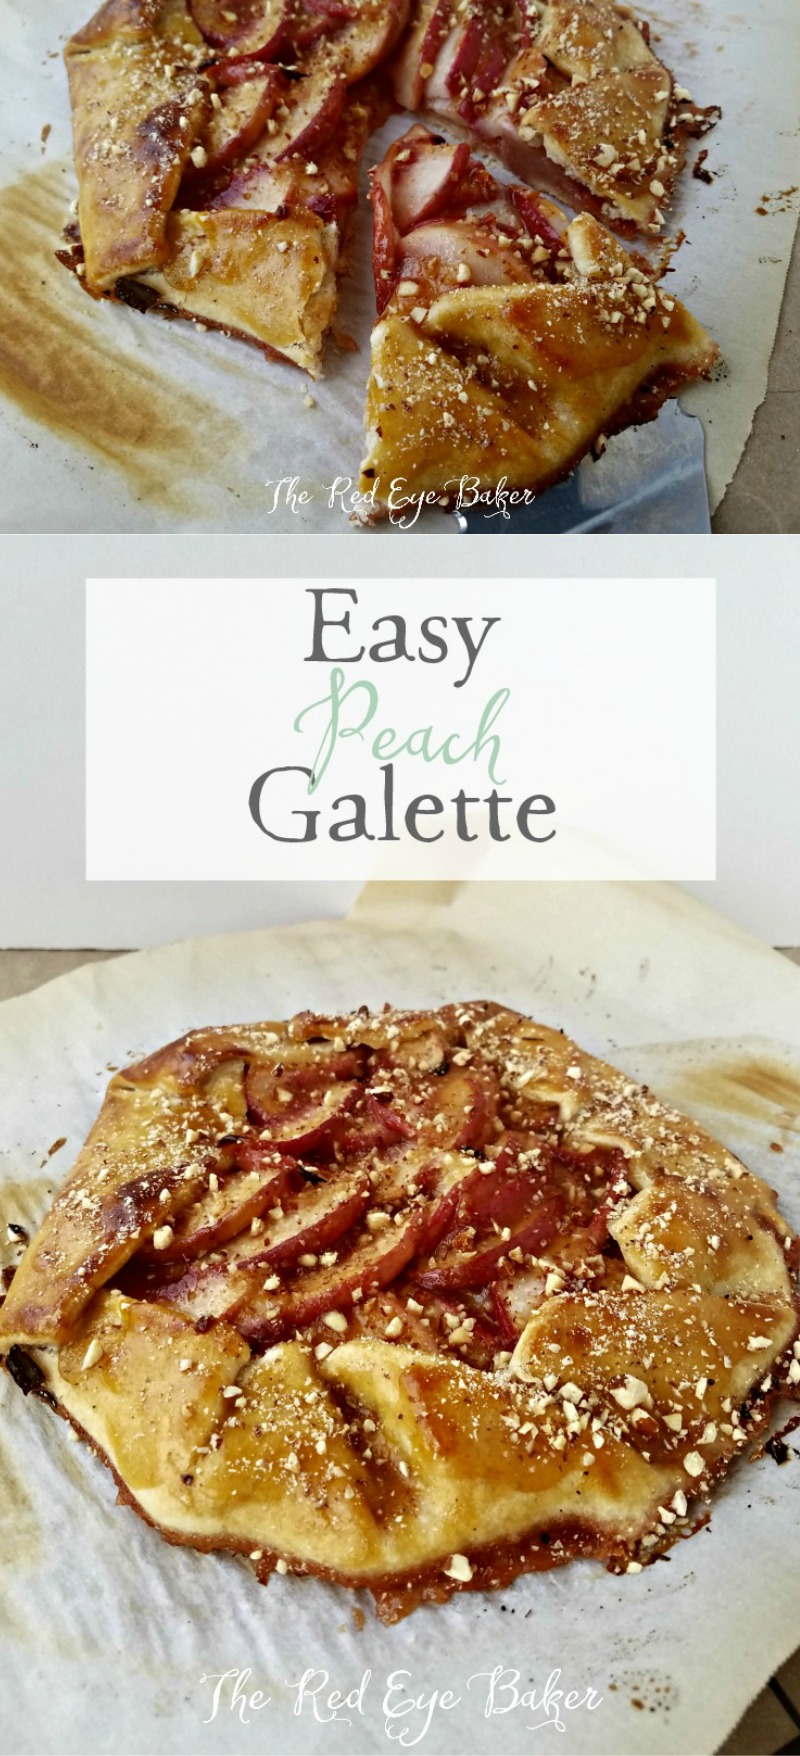 Easy Peach Galette | An easy and simple dessert. This Easy Peach Galette would work perfectly for brunch served with coffee or even a scoop of ice cream.